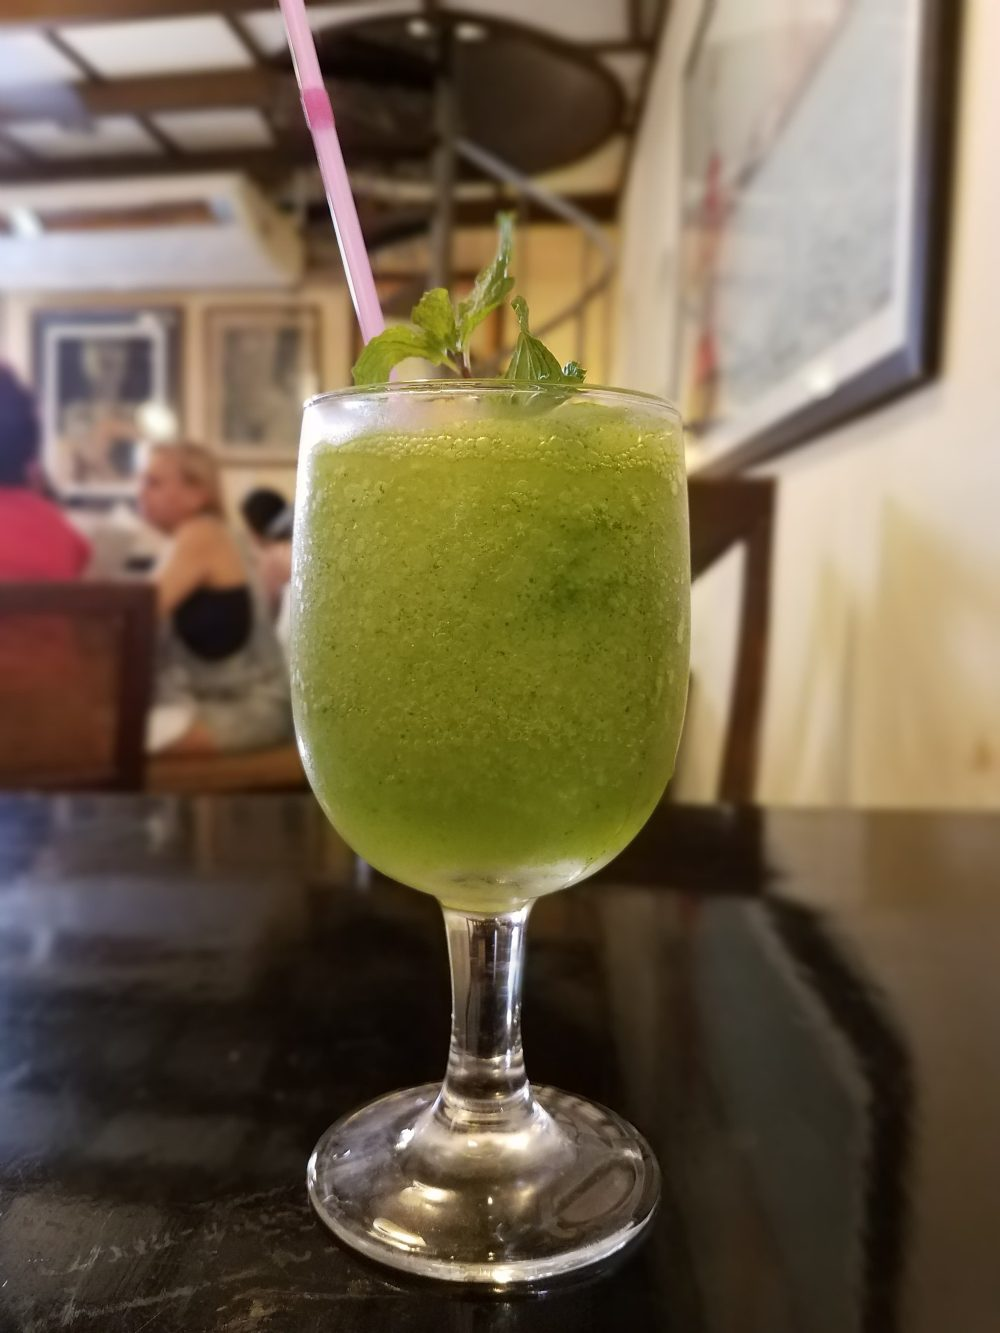 The Mojito Frappe is a MUST to try! Take a break from the heat and cool off with this cold, tasty version of a mojito. You won't be disappointed!